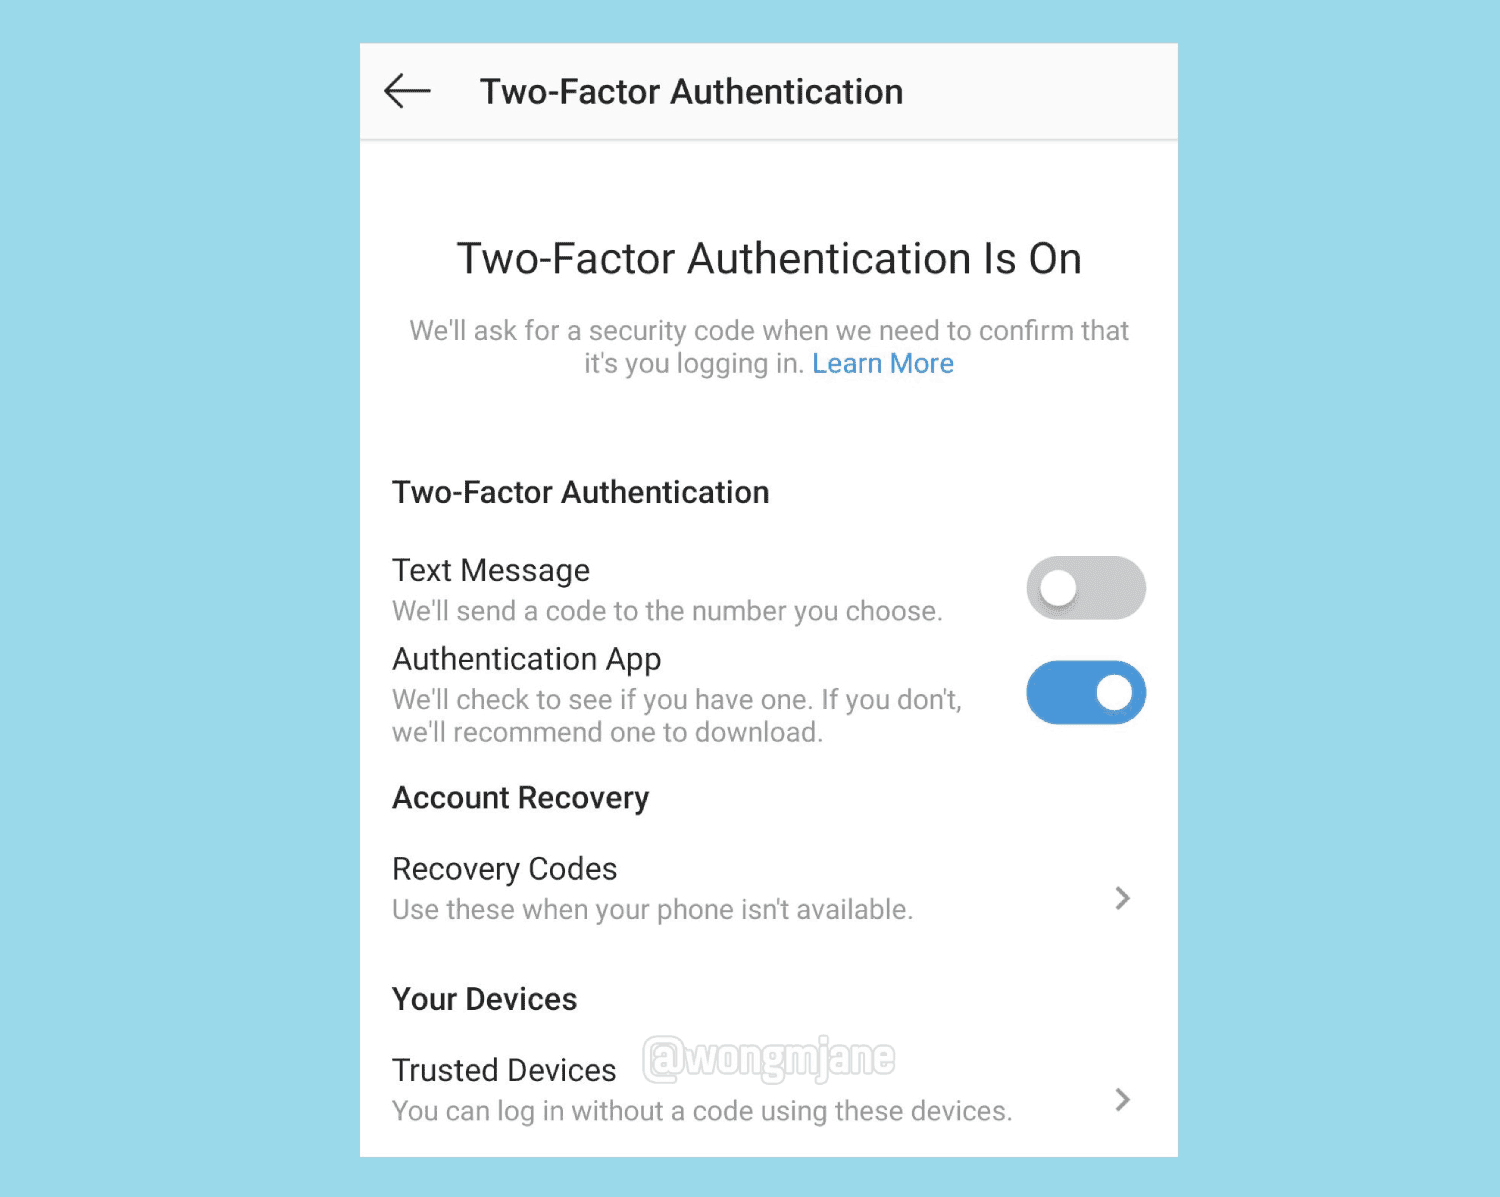 "Instagram is working on ""Trusted Devices"" management in Two-Factor Authentication settings in its app. Using this feature Instagrammers can log in without a 2FA code"